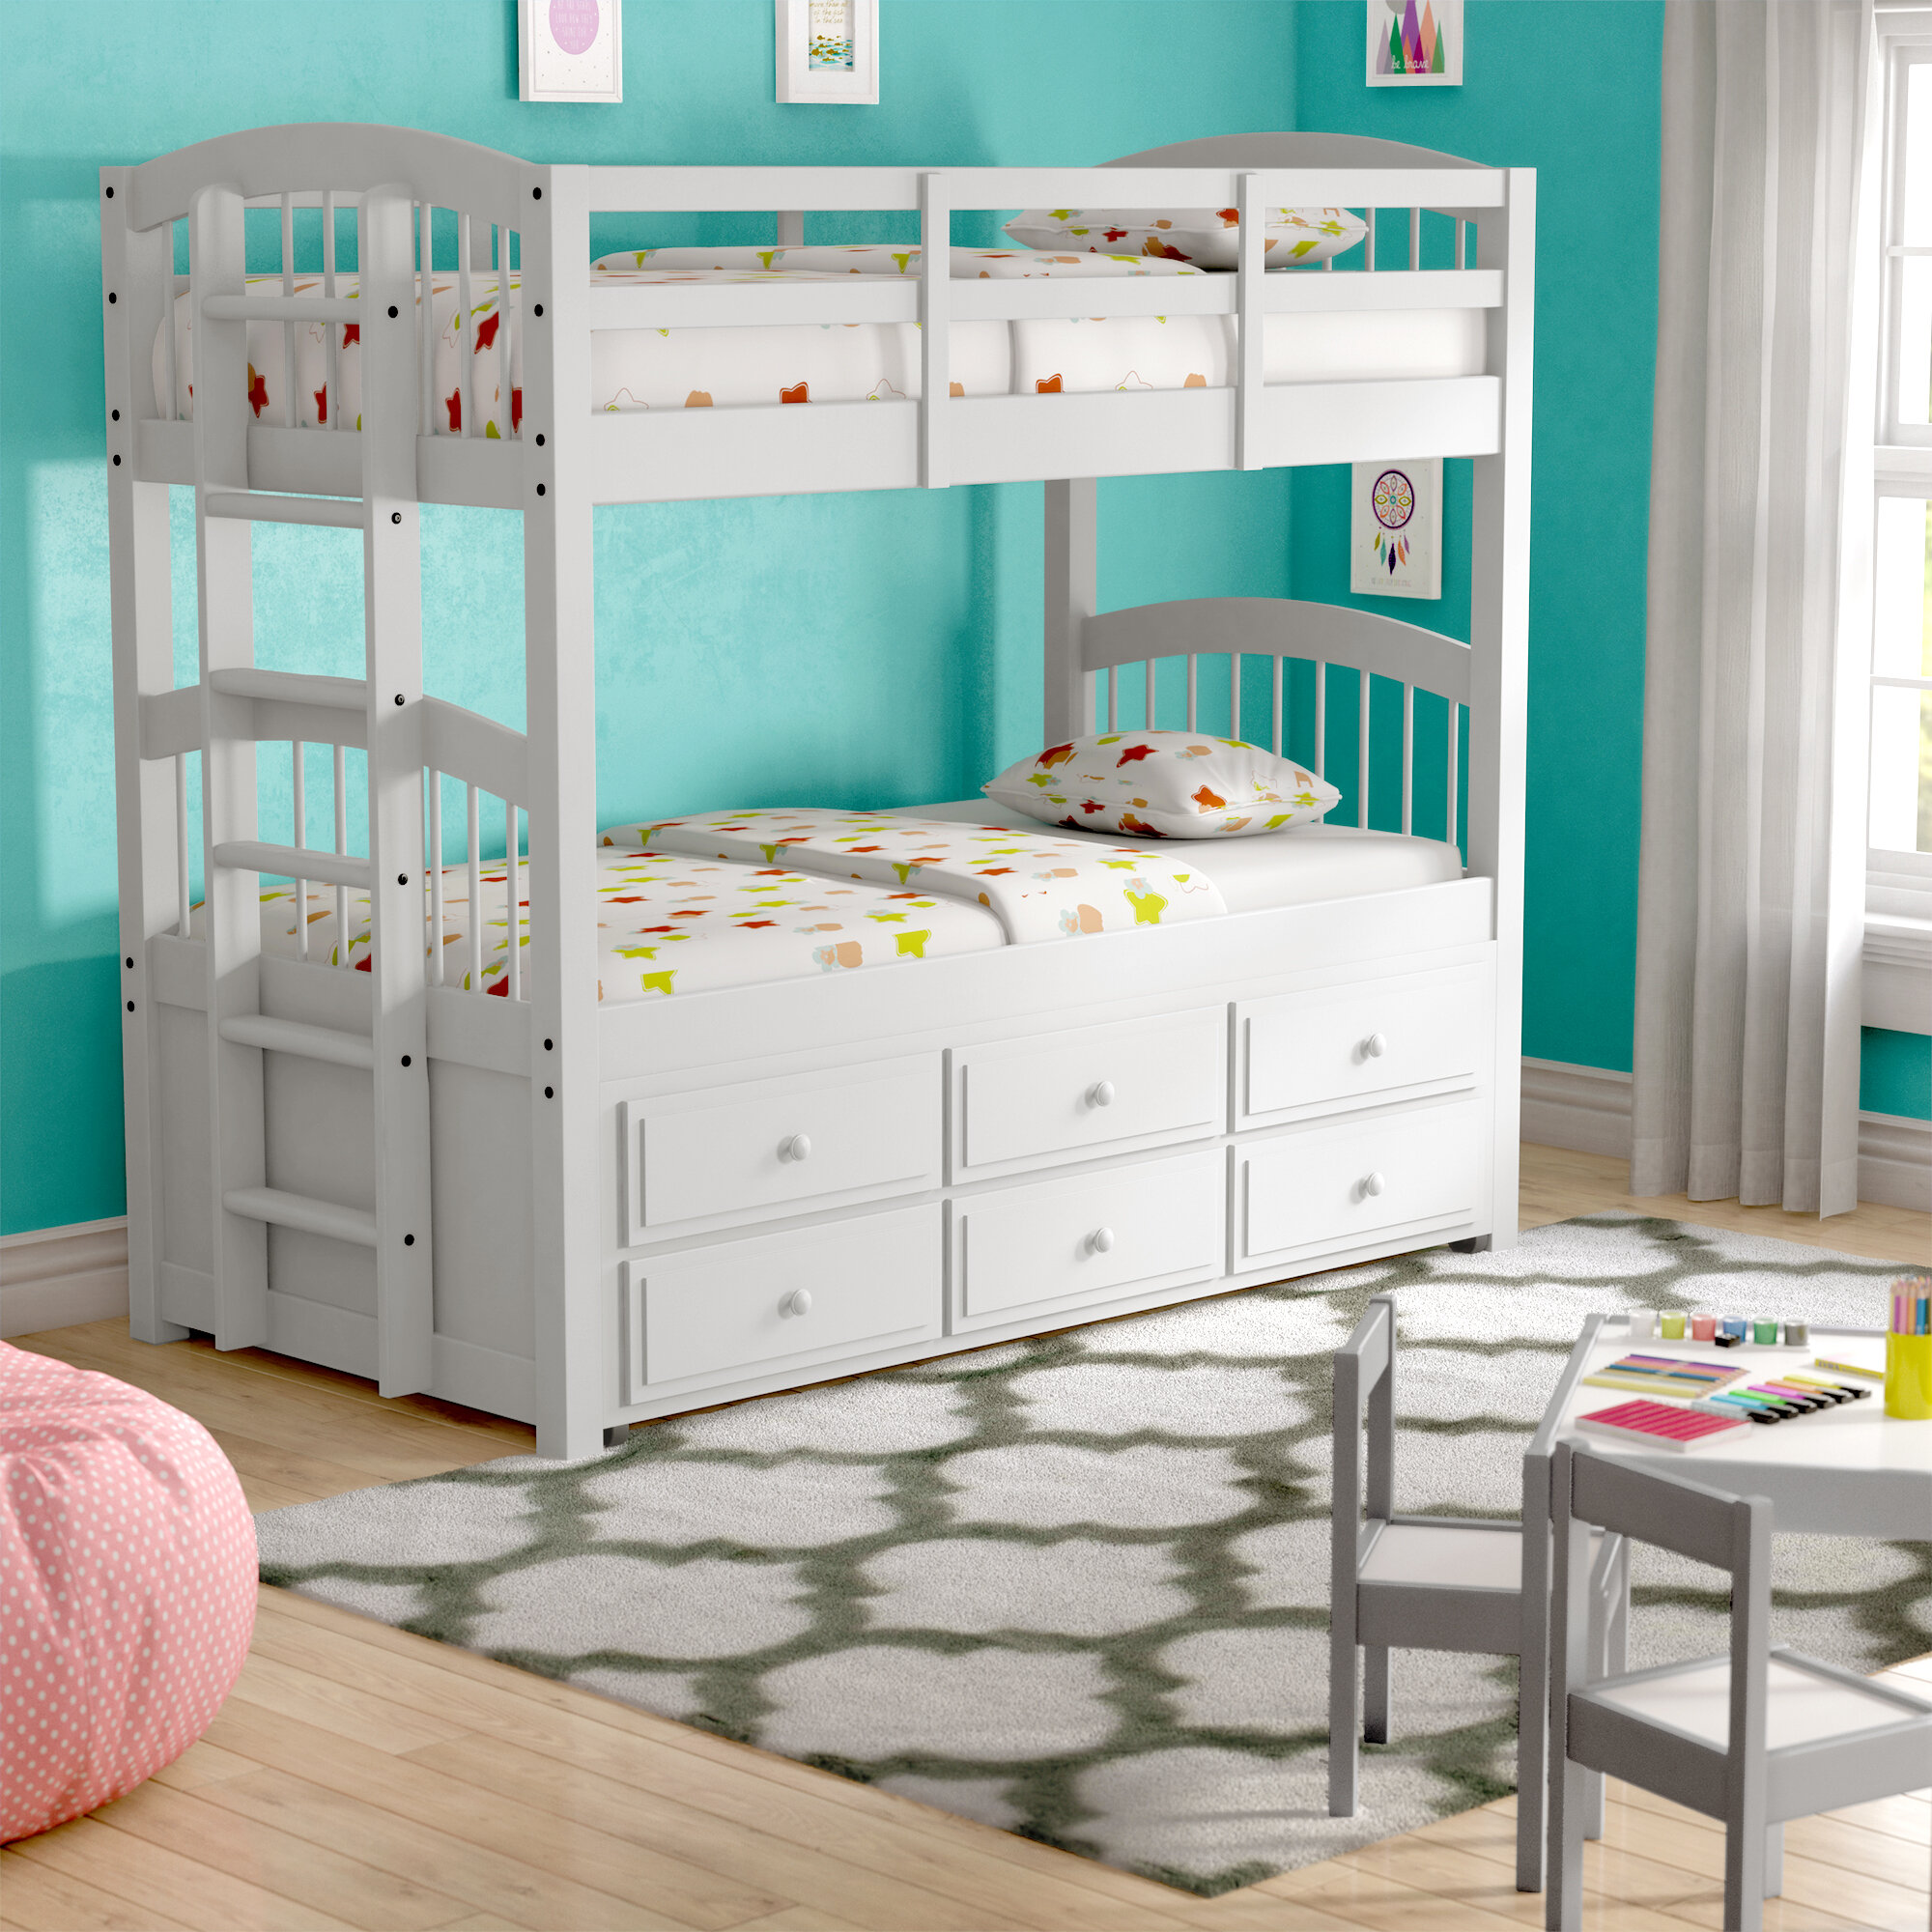 Harriet Bee Octavius Twin Bunk Bed with Trundle and 3 Drawer ...